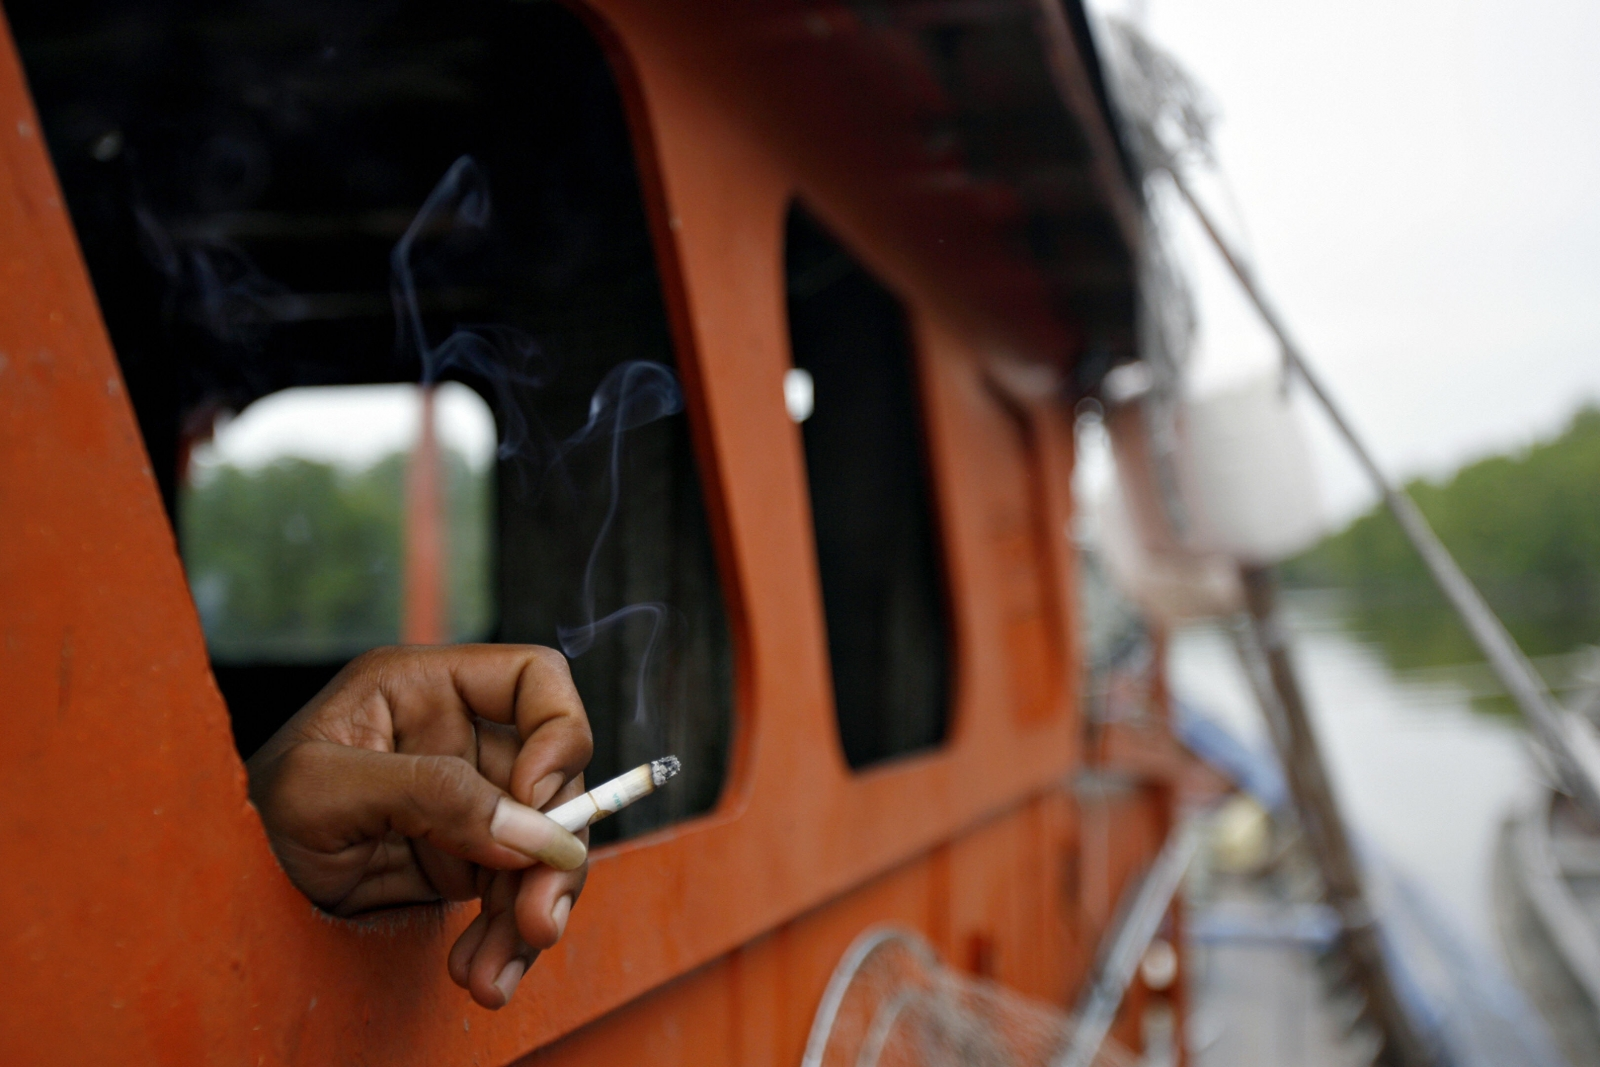 Smoking costing world economy over $1.4 tr a year